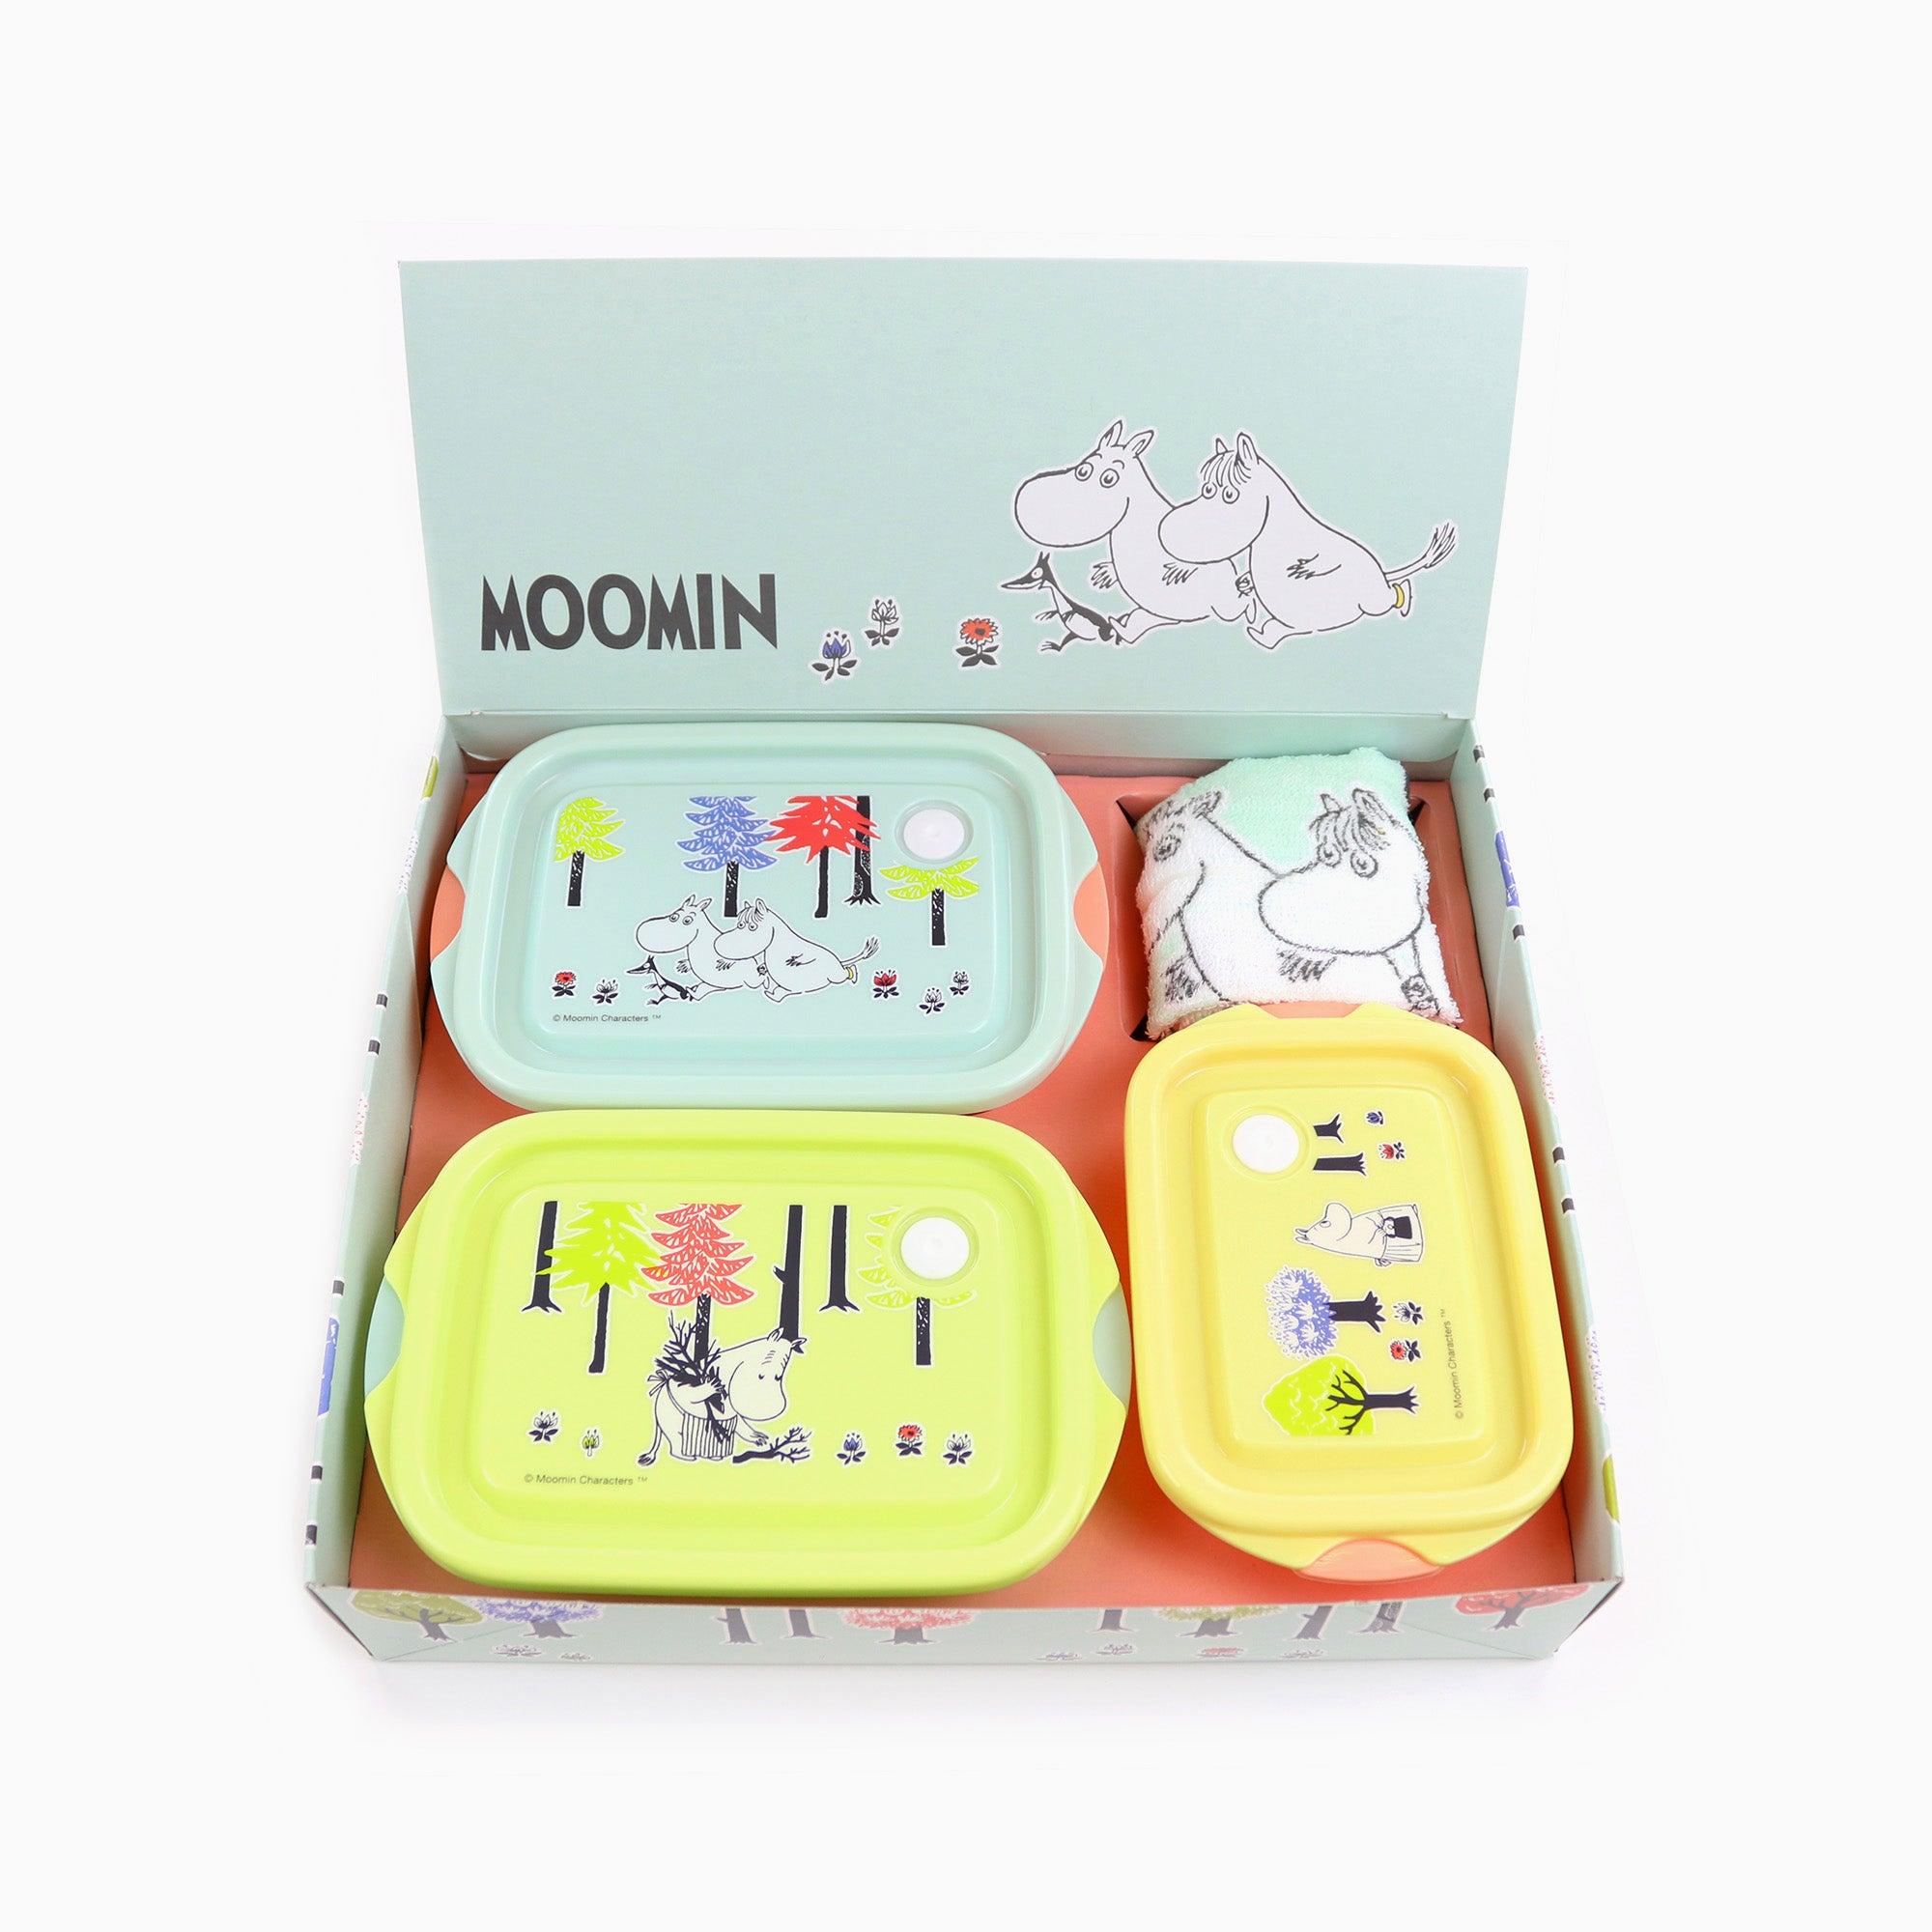 Moomin Food Containers + Towel